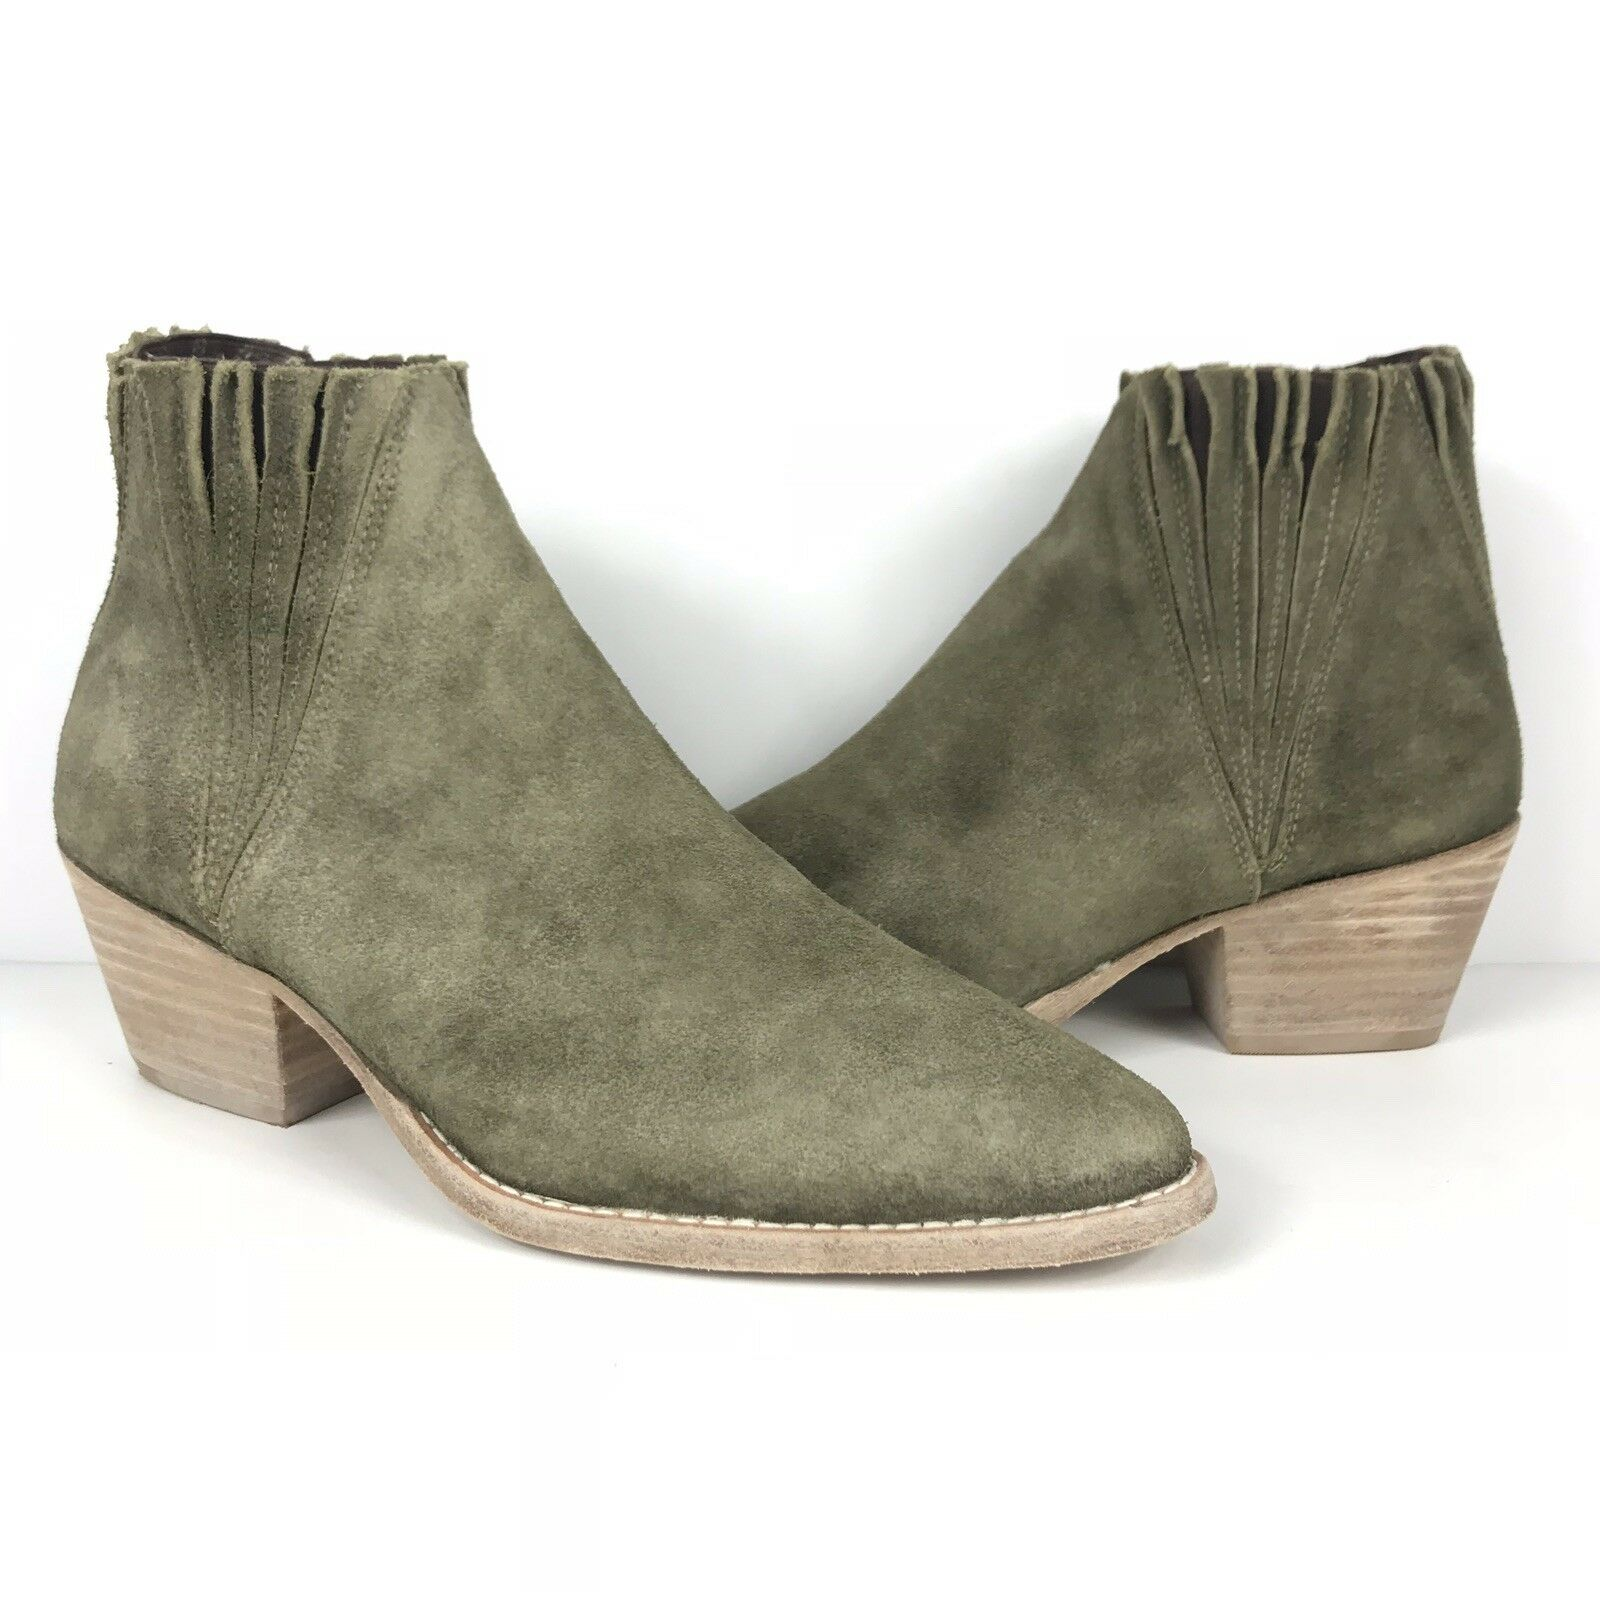 Faryl Robin Free People Trill Ankle Bootie Taupe Sz 8 Retail  NWOB